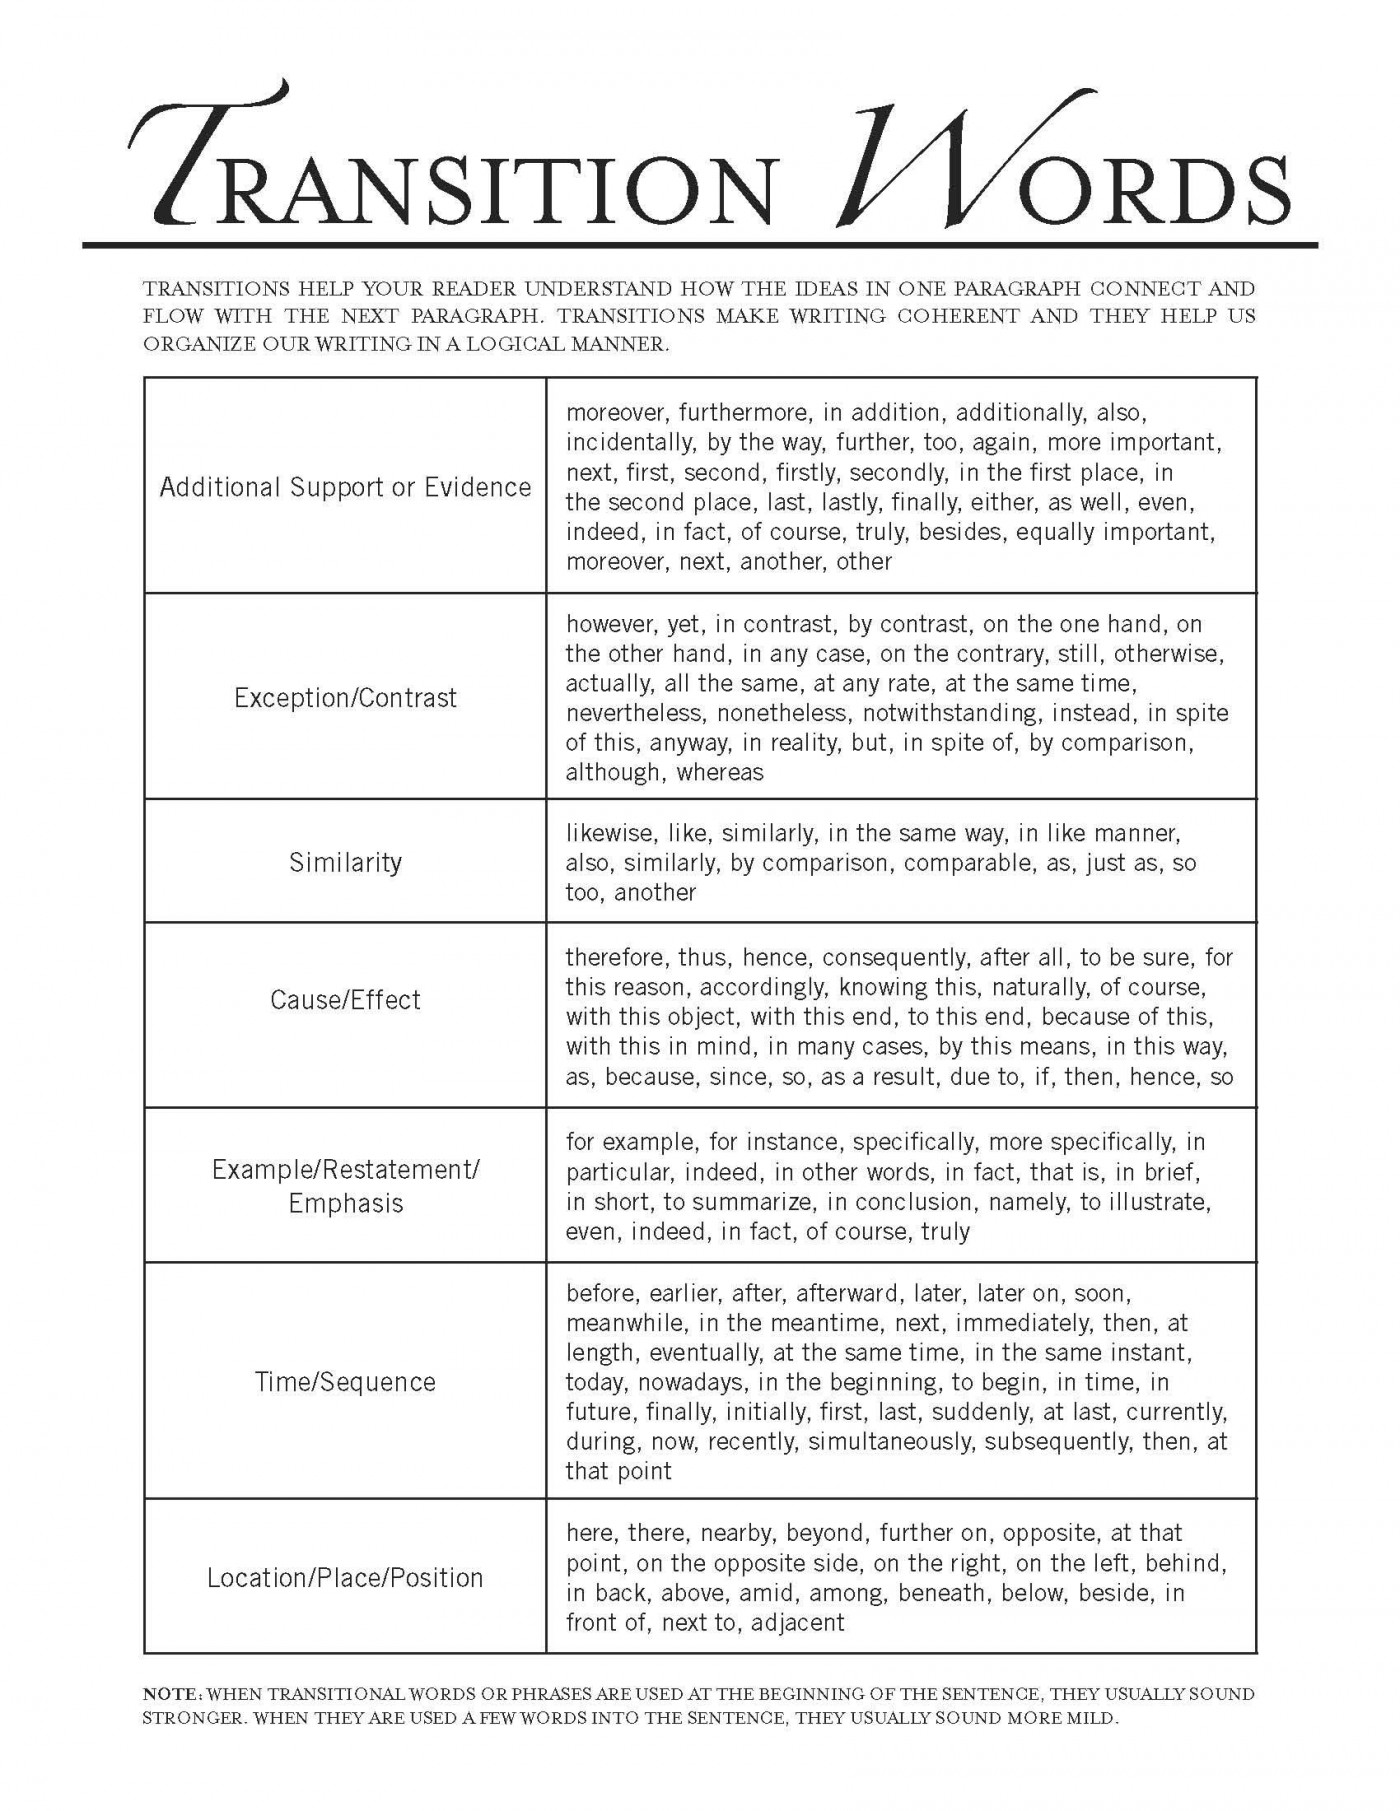 003 Transition Words For Essay Fascinating Essays Between Paragraphs Writing An Argumentative In Spanish 1400